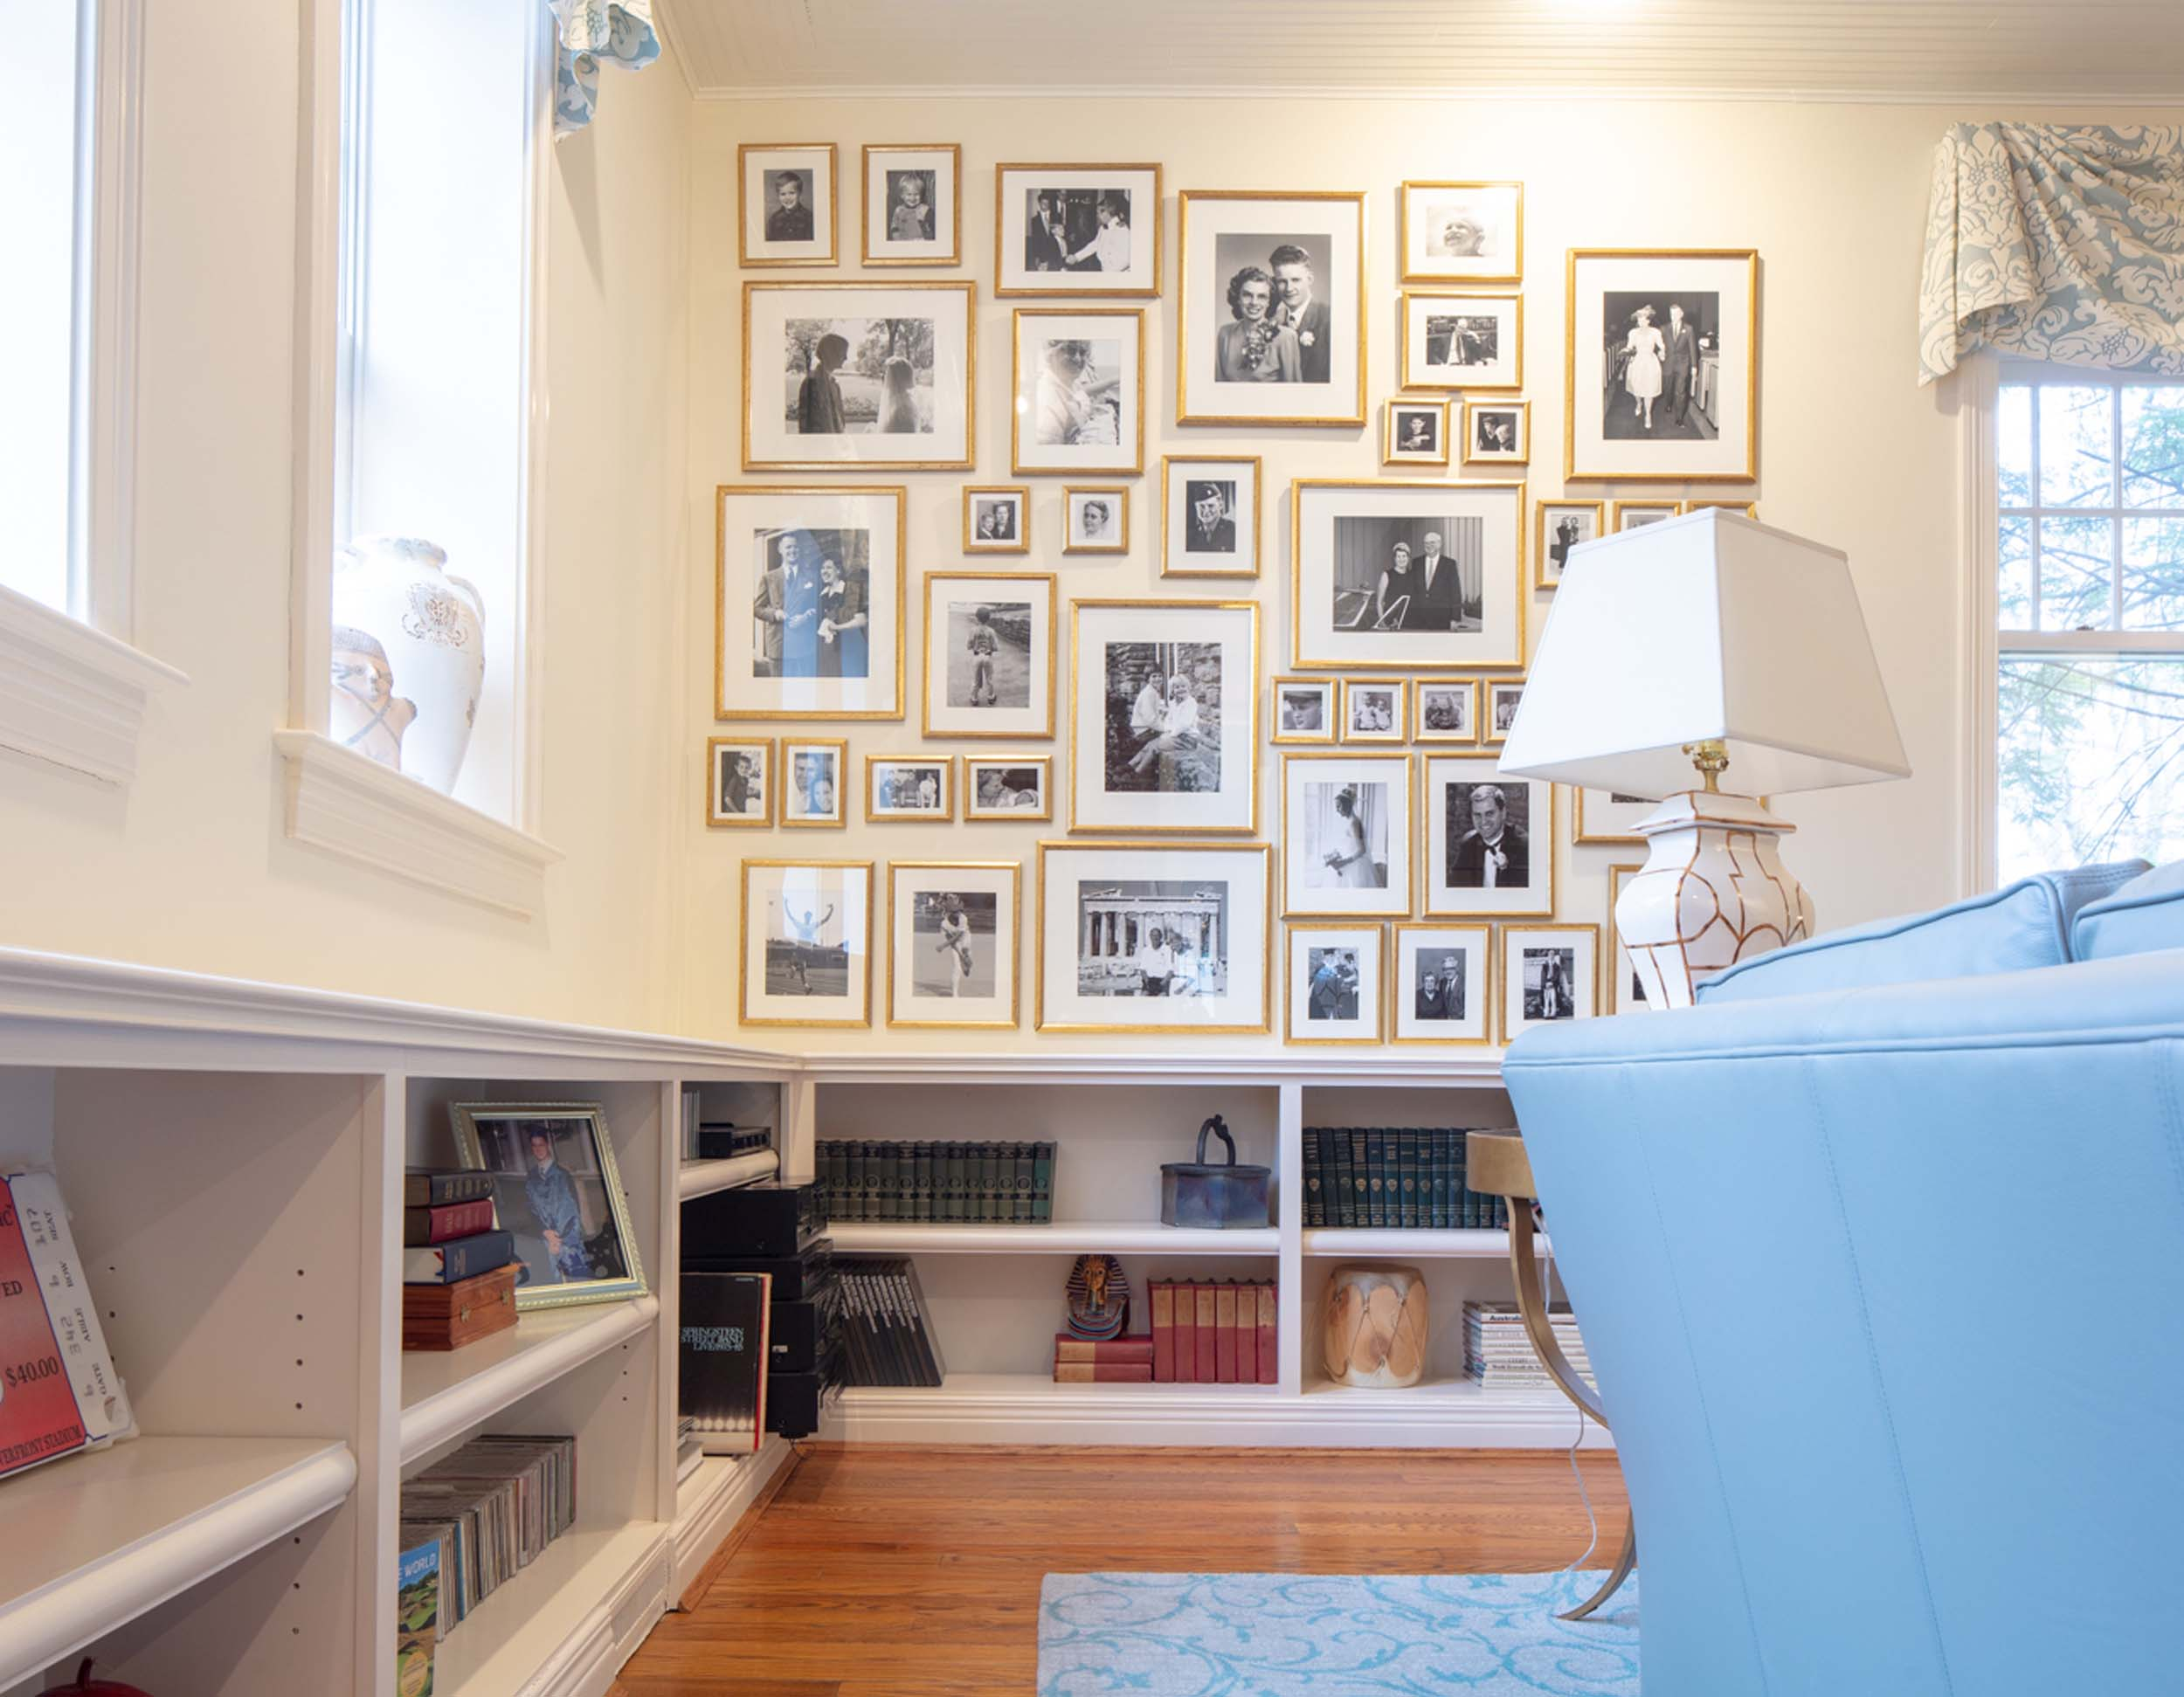 Living room with white wooden bookshelf and picture frames on the wall